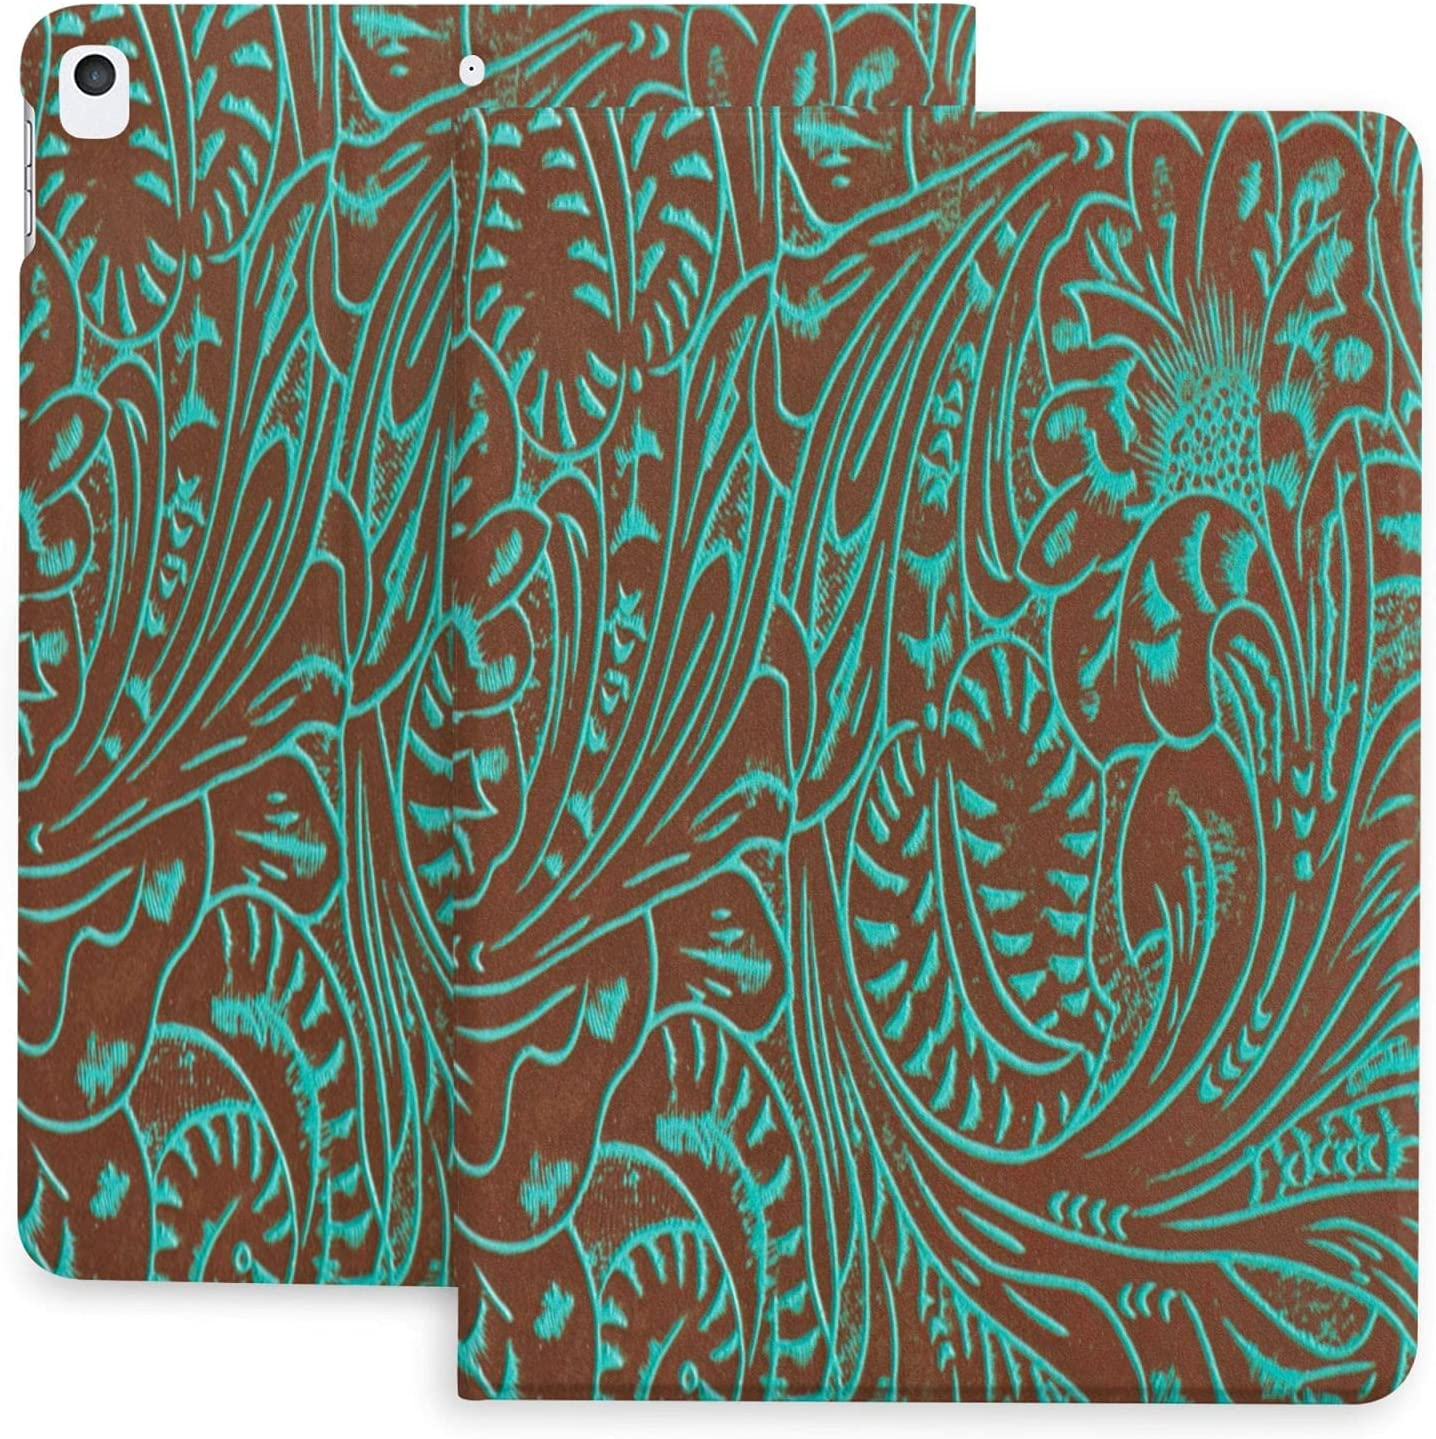 Mail order Western Country Rustic Aqua Teal and for Ipad Brown Case Cowboy Rare